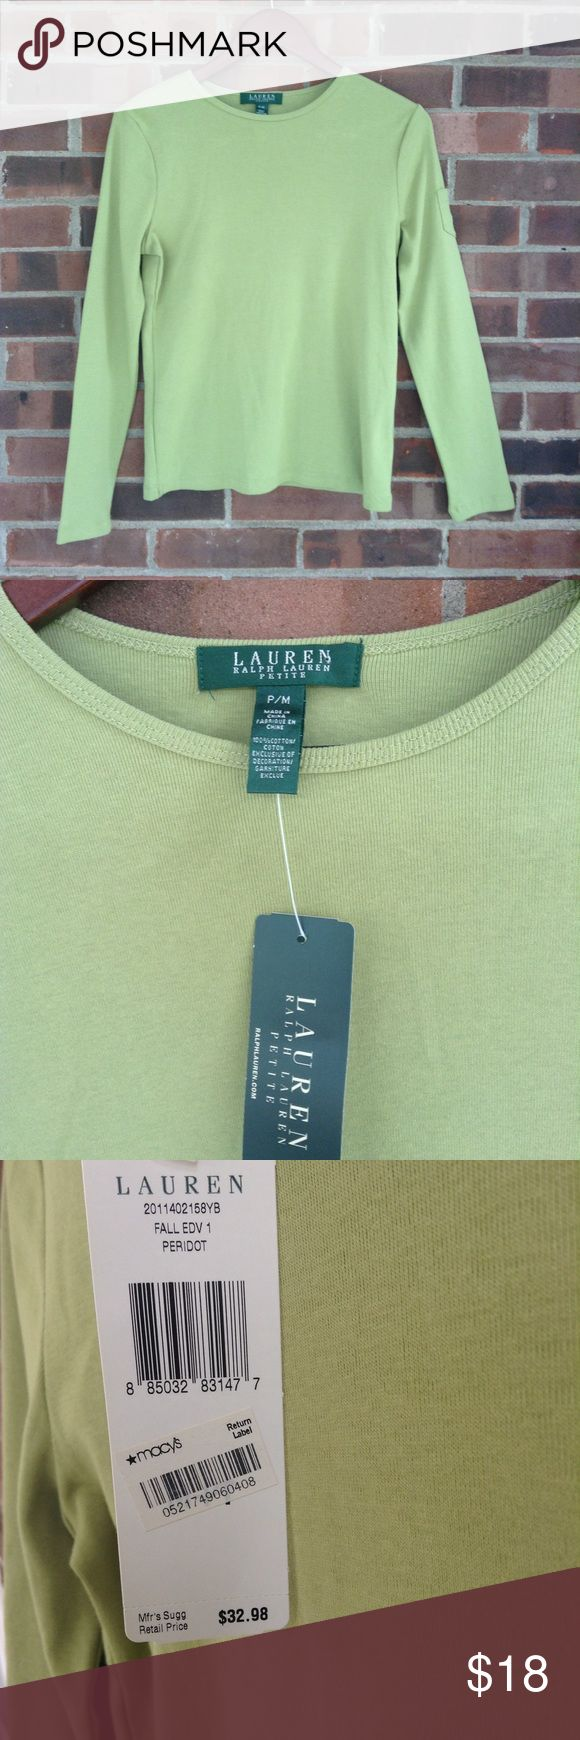 NWT Lauren Ralph Lauren green long sleeve top PM New with tag Lauren Ralph Lauren long sleeve top, light green color, small pocket on the sleeve with the brand initials. Sz petite M. Smoke and pet free home, fast shipping. Lauren Ralph Lauren Tops Tees - Long Sleeve